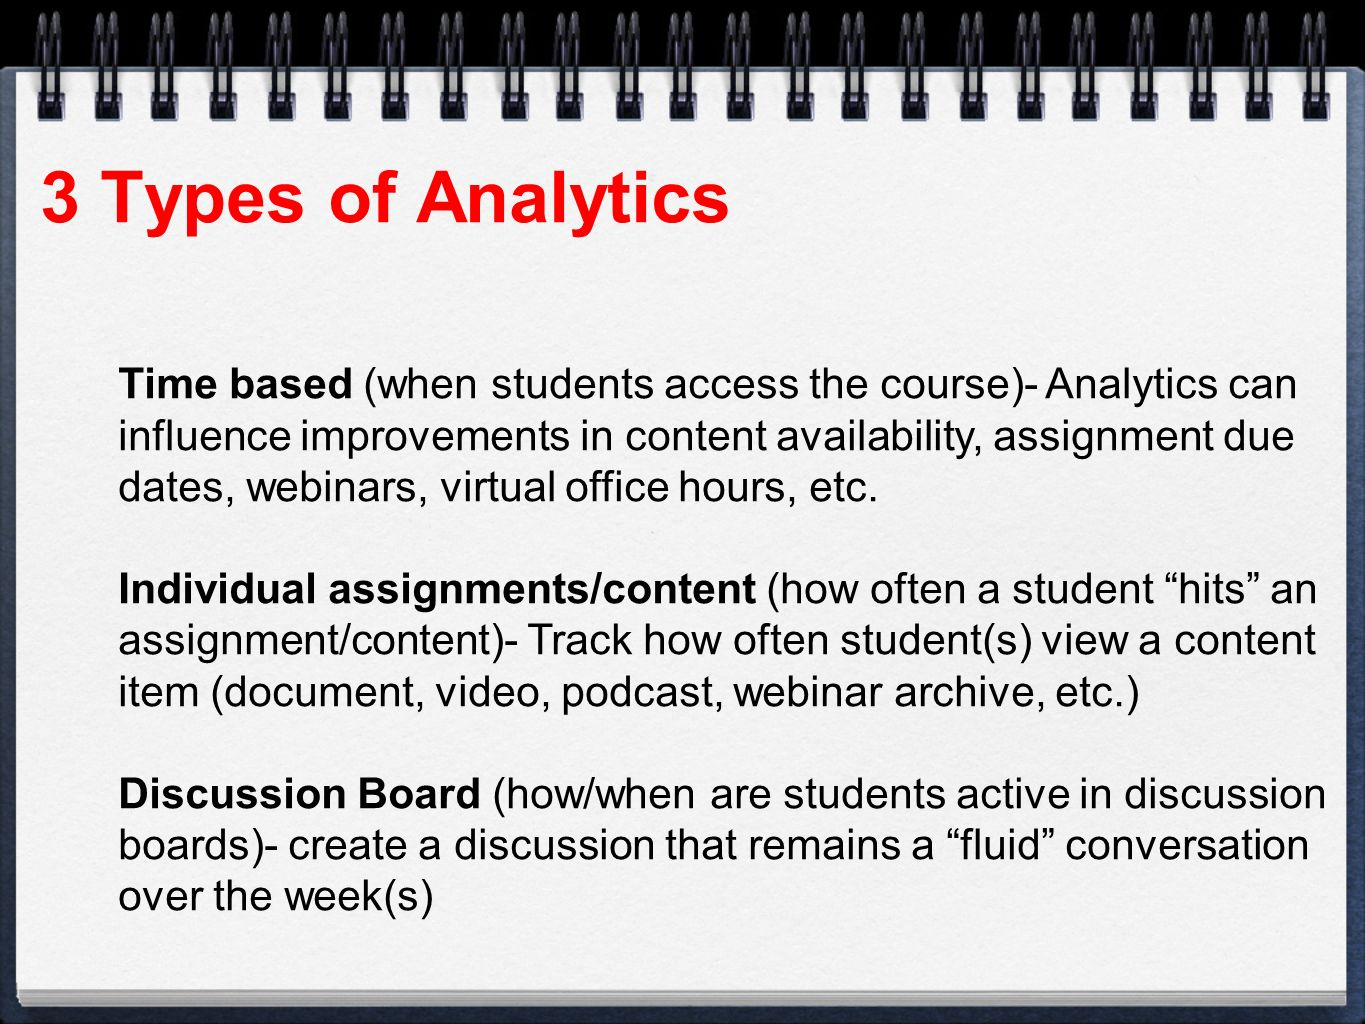 3 Types of Analytics Time based (when students access the course)- Analytics can influence improvements in content availability, assignment due dates, webinars, virtual office hours, etc.